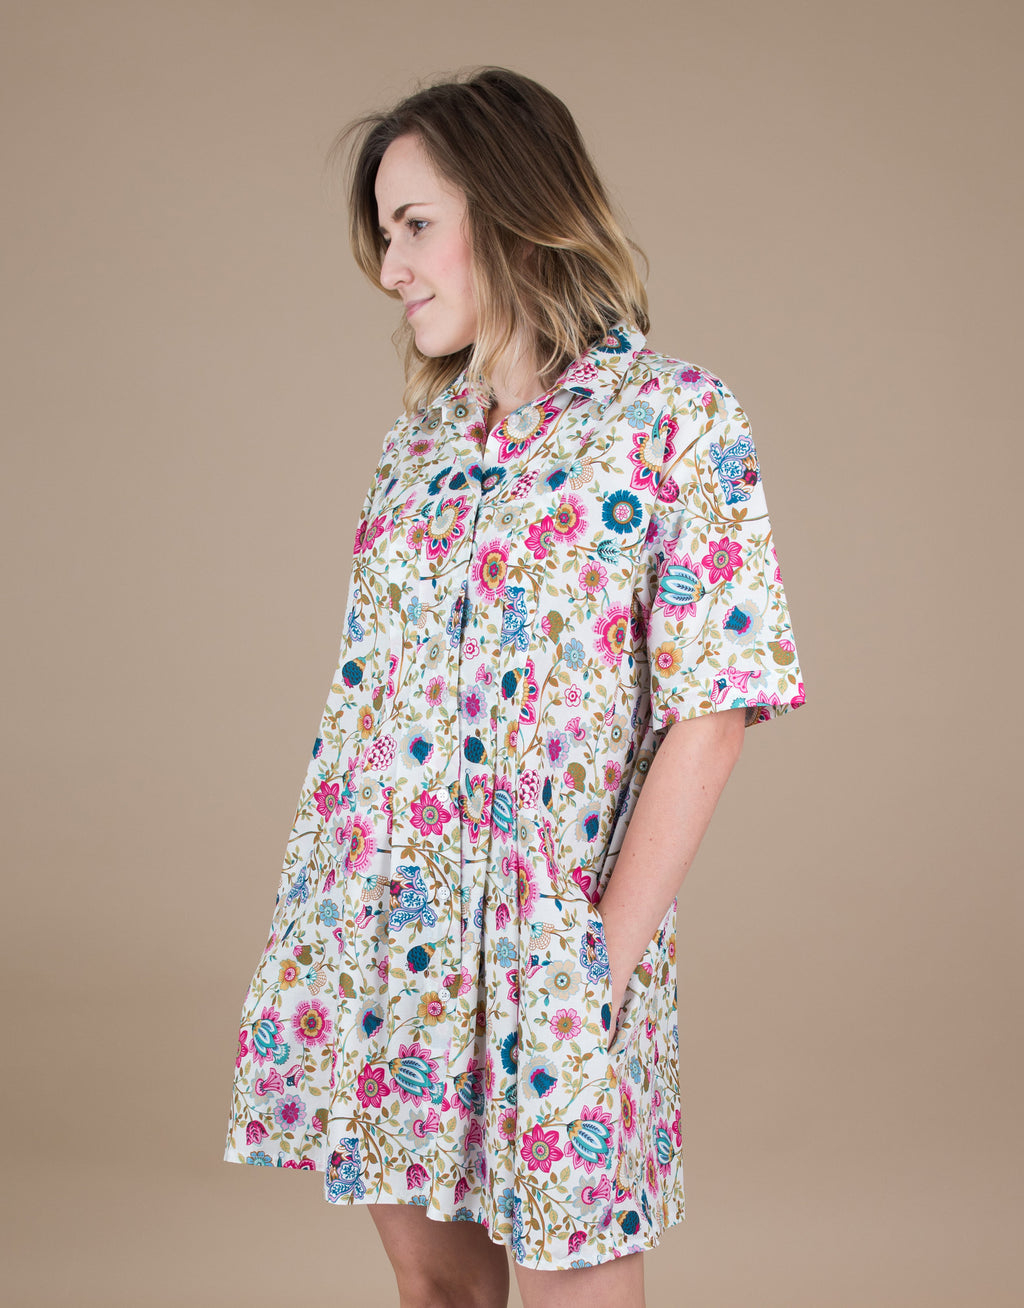 Small batch casual chic clothing sustainably handmade for every woman. Pink Floral Shirt Dress.